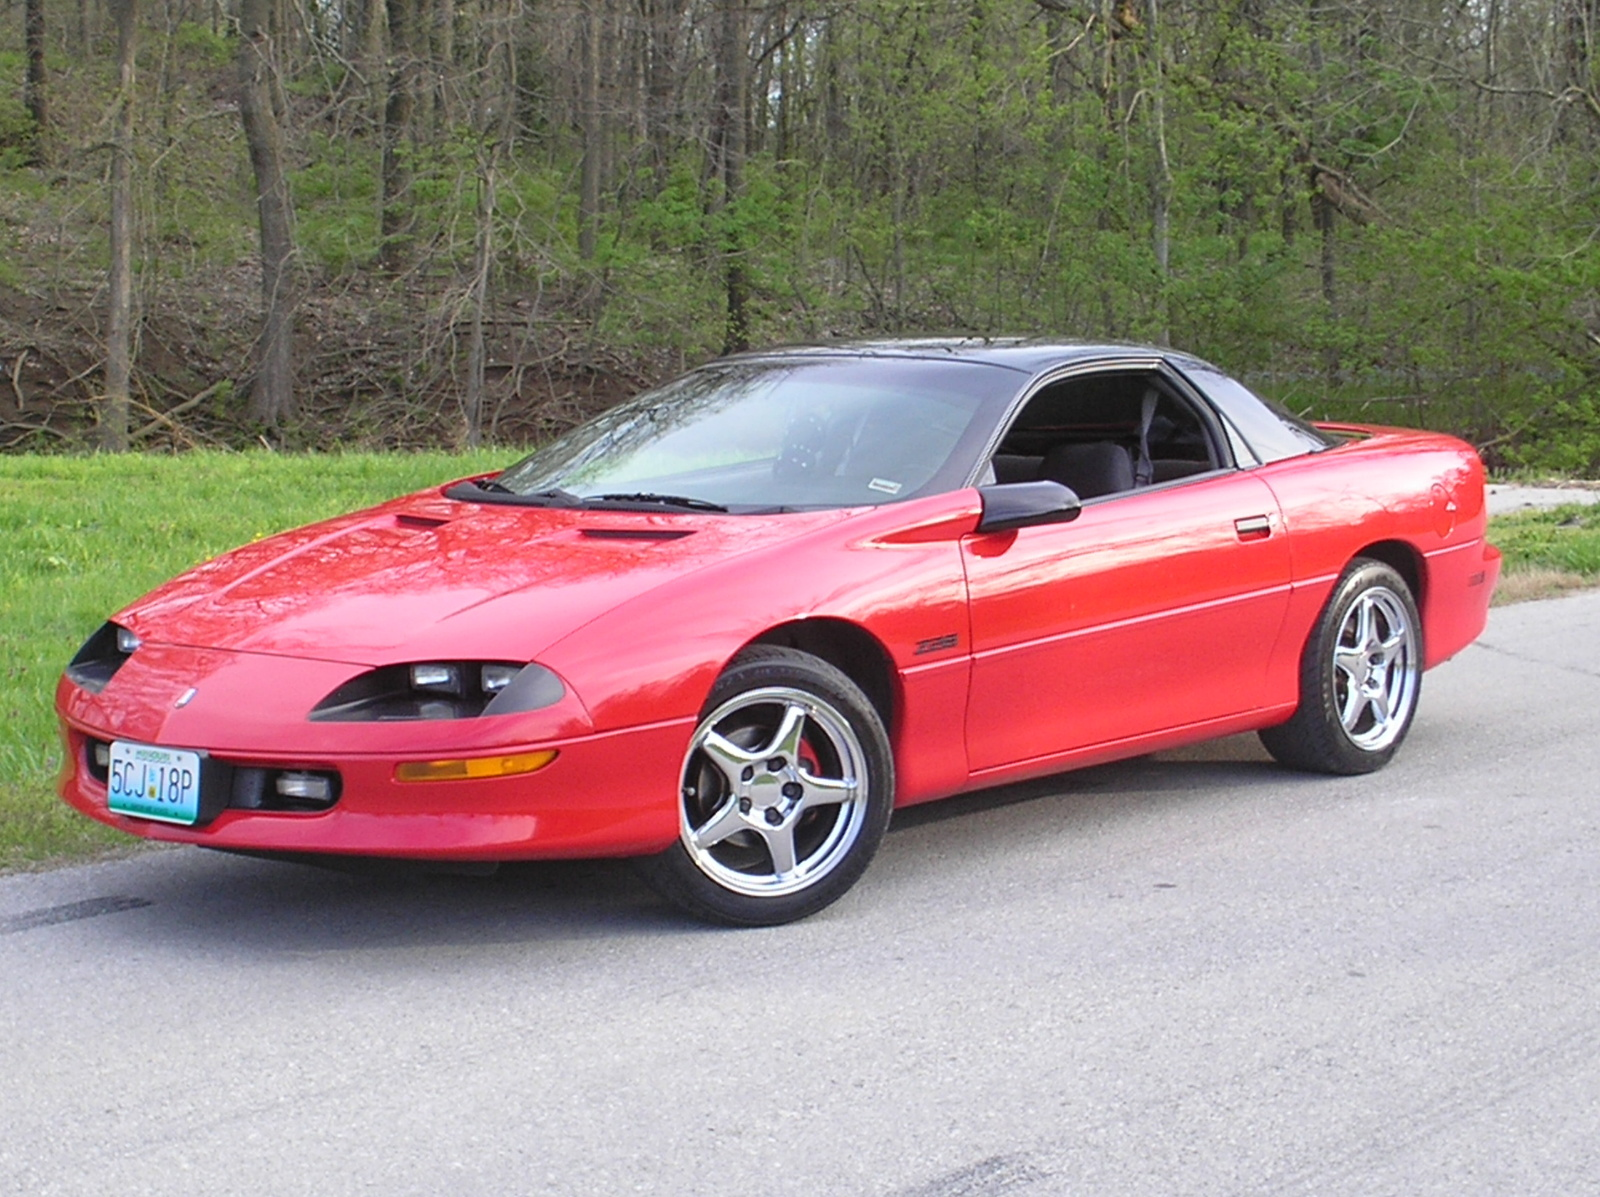 Chevrolet moreover Camaro furthermore 1993 Chevrolet Camaro Pictures C1000 pi13944900 together with 2012 Karma in addition 2015 Chevy Tahoe Police Package For Sale. on 2000 chevy camaro ss horsepower